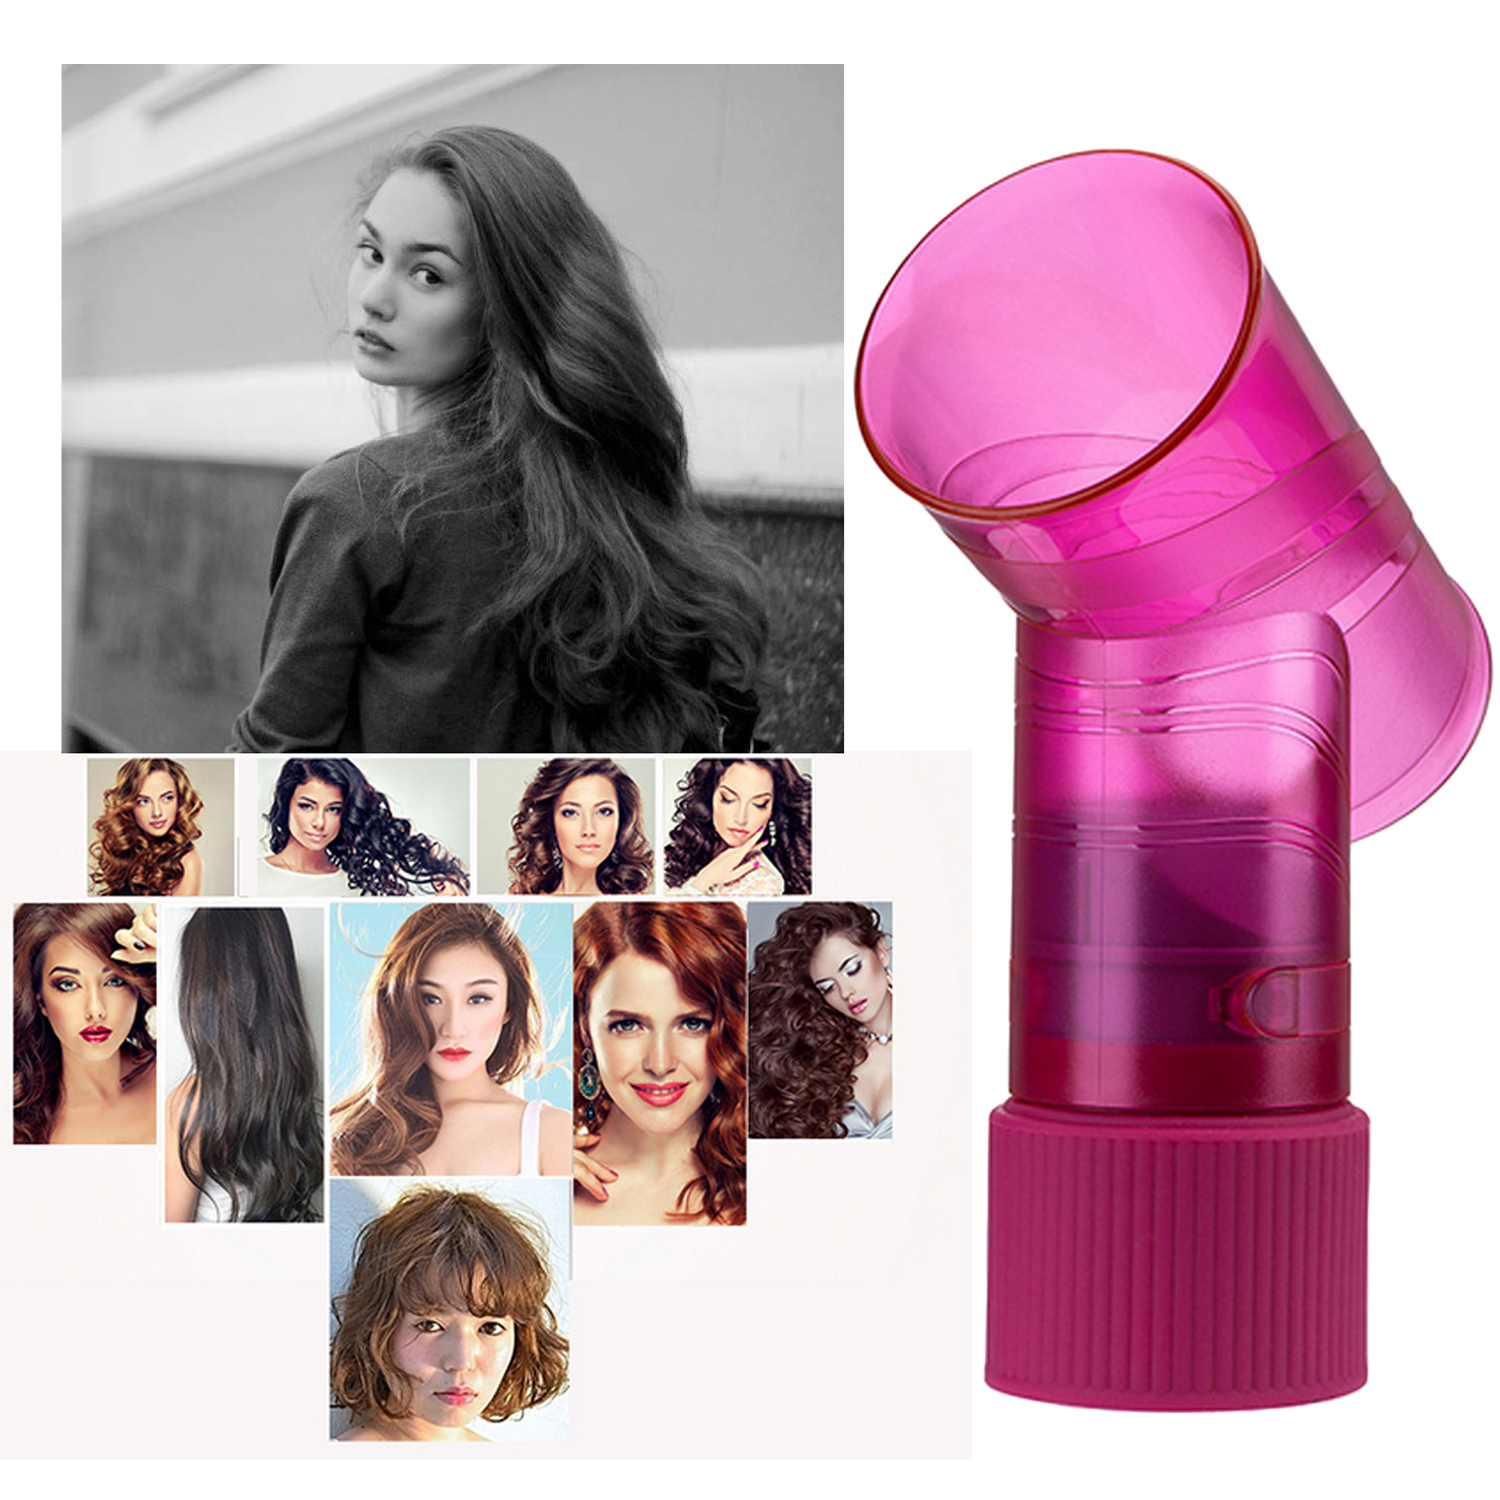 DIY Portable Hair Curly Dryer Blower Diffuser Attachment For Curly Wavy Hair Stylist Hairdresser Salon Hair Curler Styling Tool